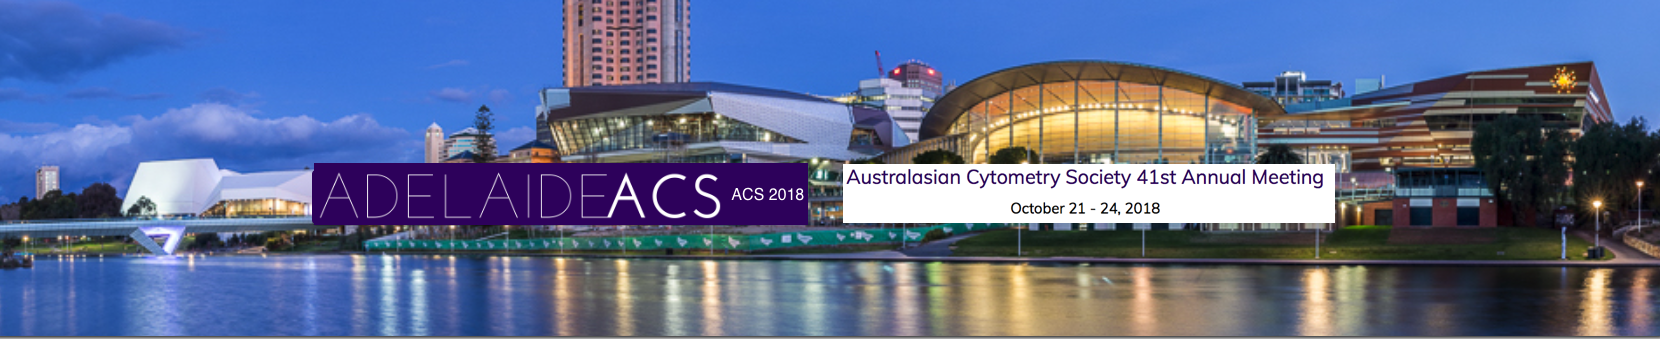 Australasian Cytometry Society